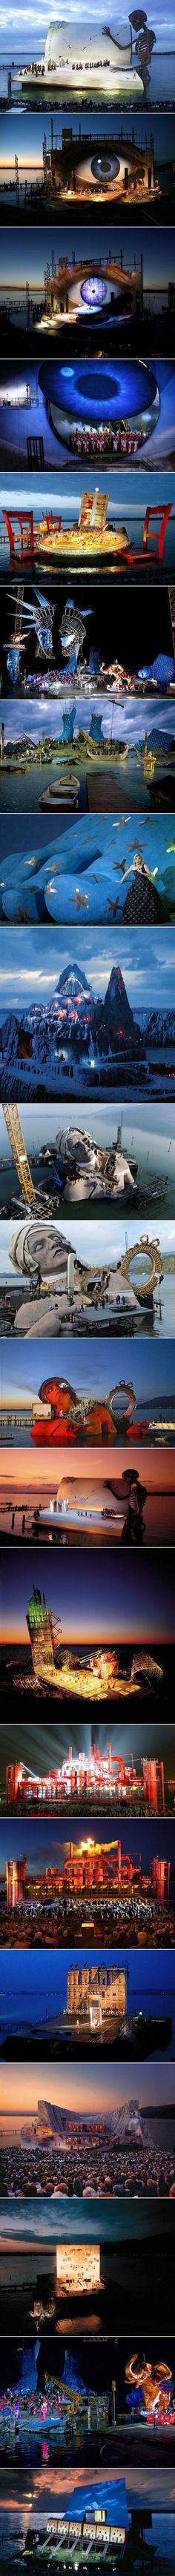 Located in Bregenz, Austria, the Seebuhne, a mind-blowing floating stage, boasts seating for 7,000, and often used for large-scale opera or musical performances over water on the shores of Lake Constance. Opera or musical productions on the floating stage generally tend to come from the popular operatic repertoire, but often are extravagantly original and innovative productions/ stagings, frequently using the waters of the lake as an extension of the stage.